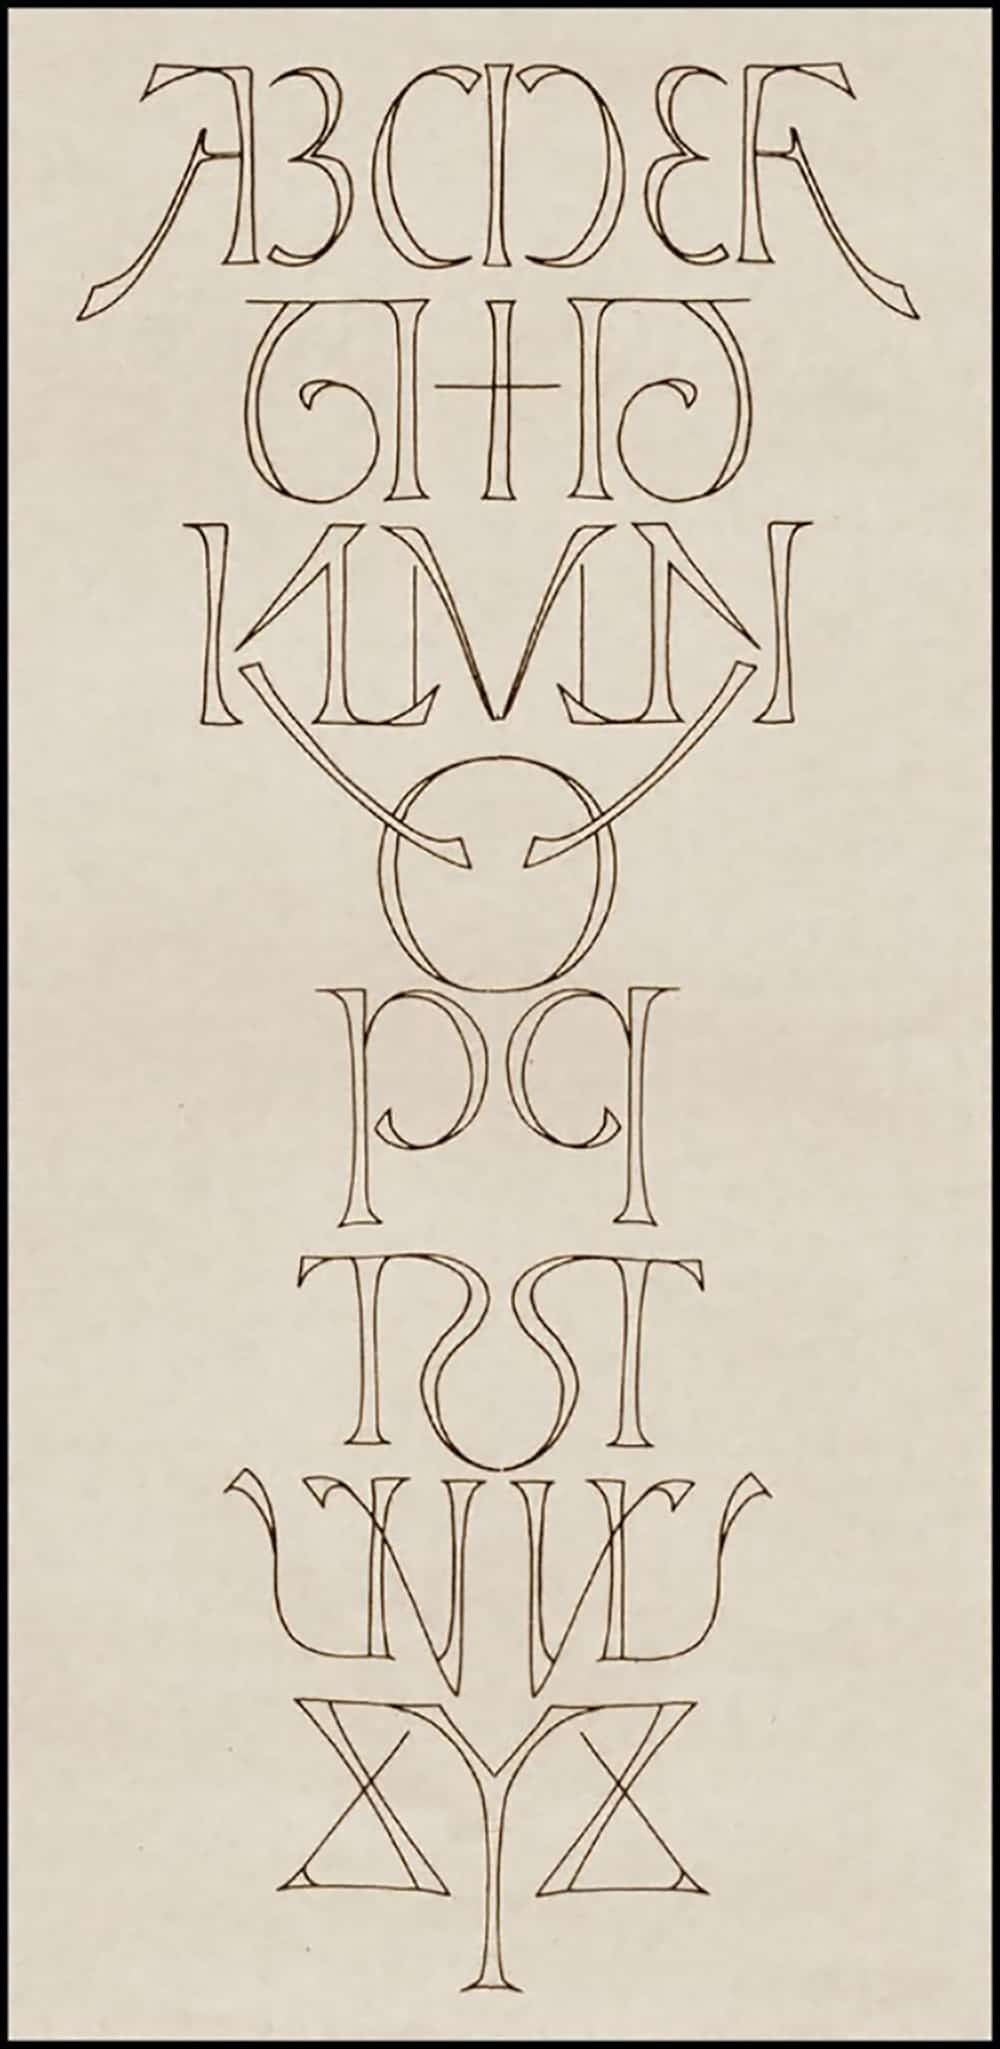 Alphabet Ambigram Designed by Scott Kim